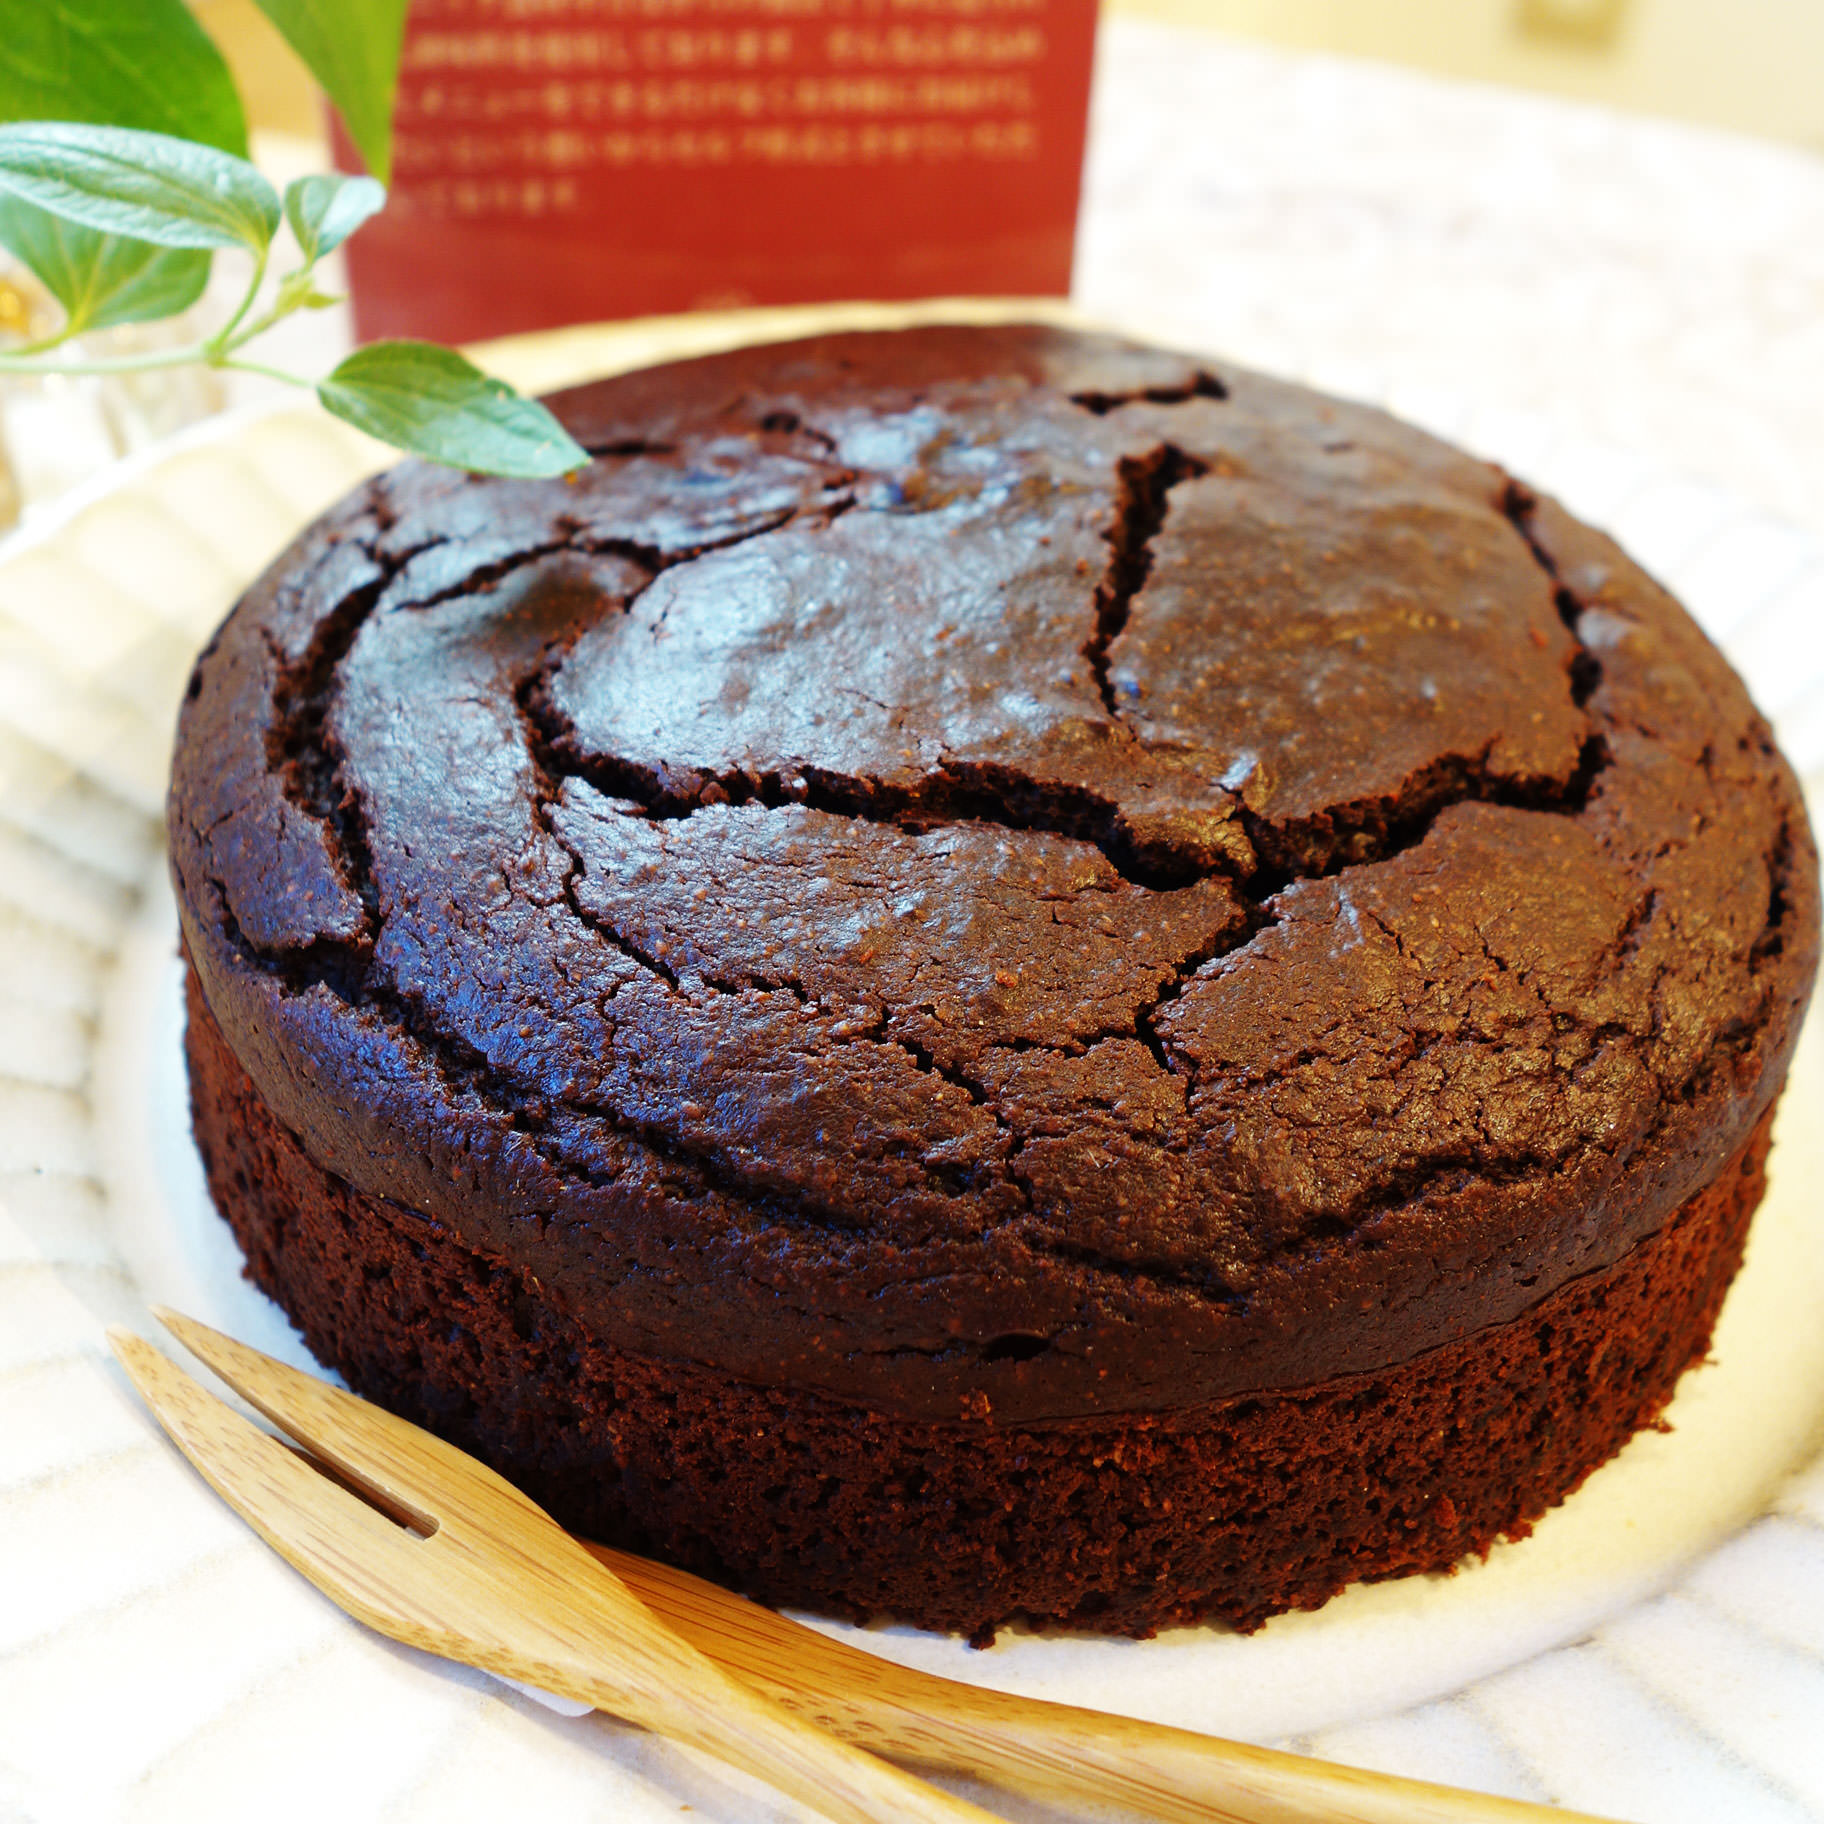 Cake of SIRAM Nishiogikubo